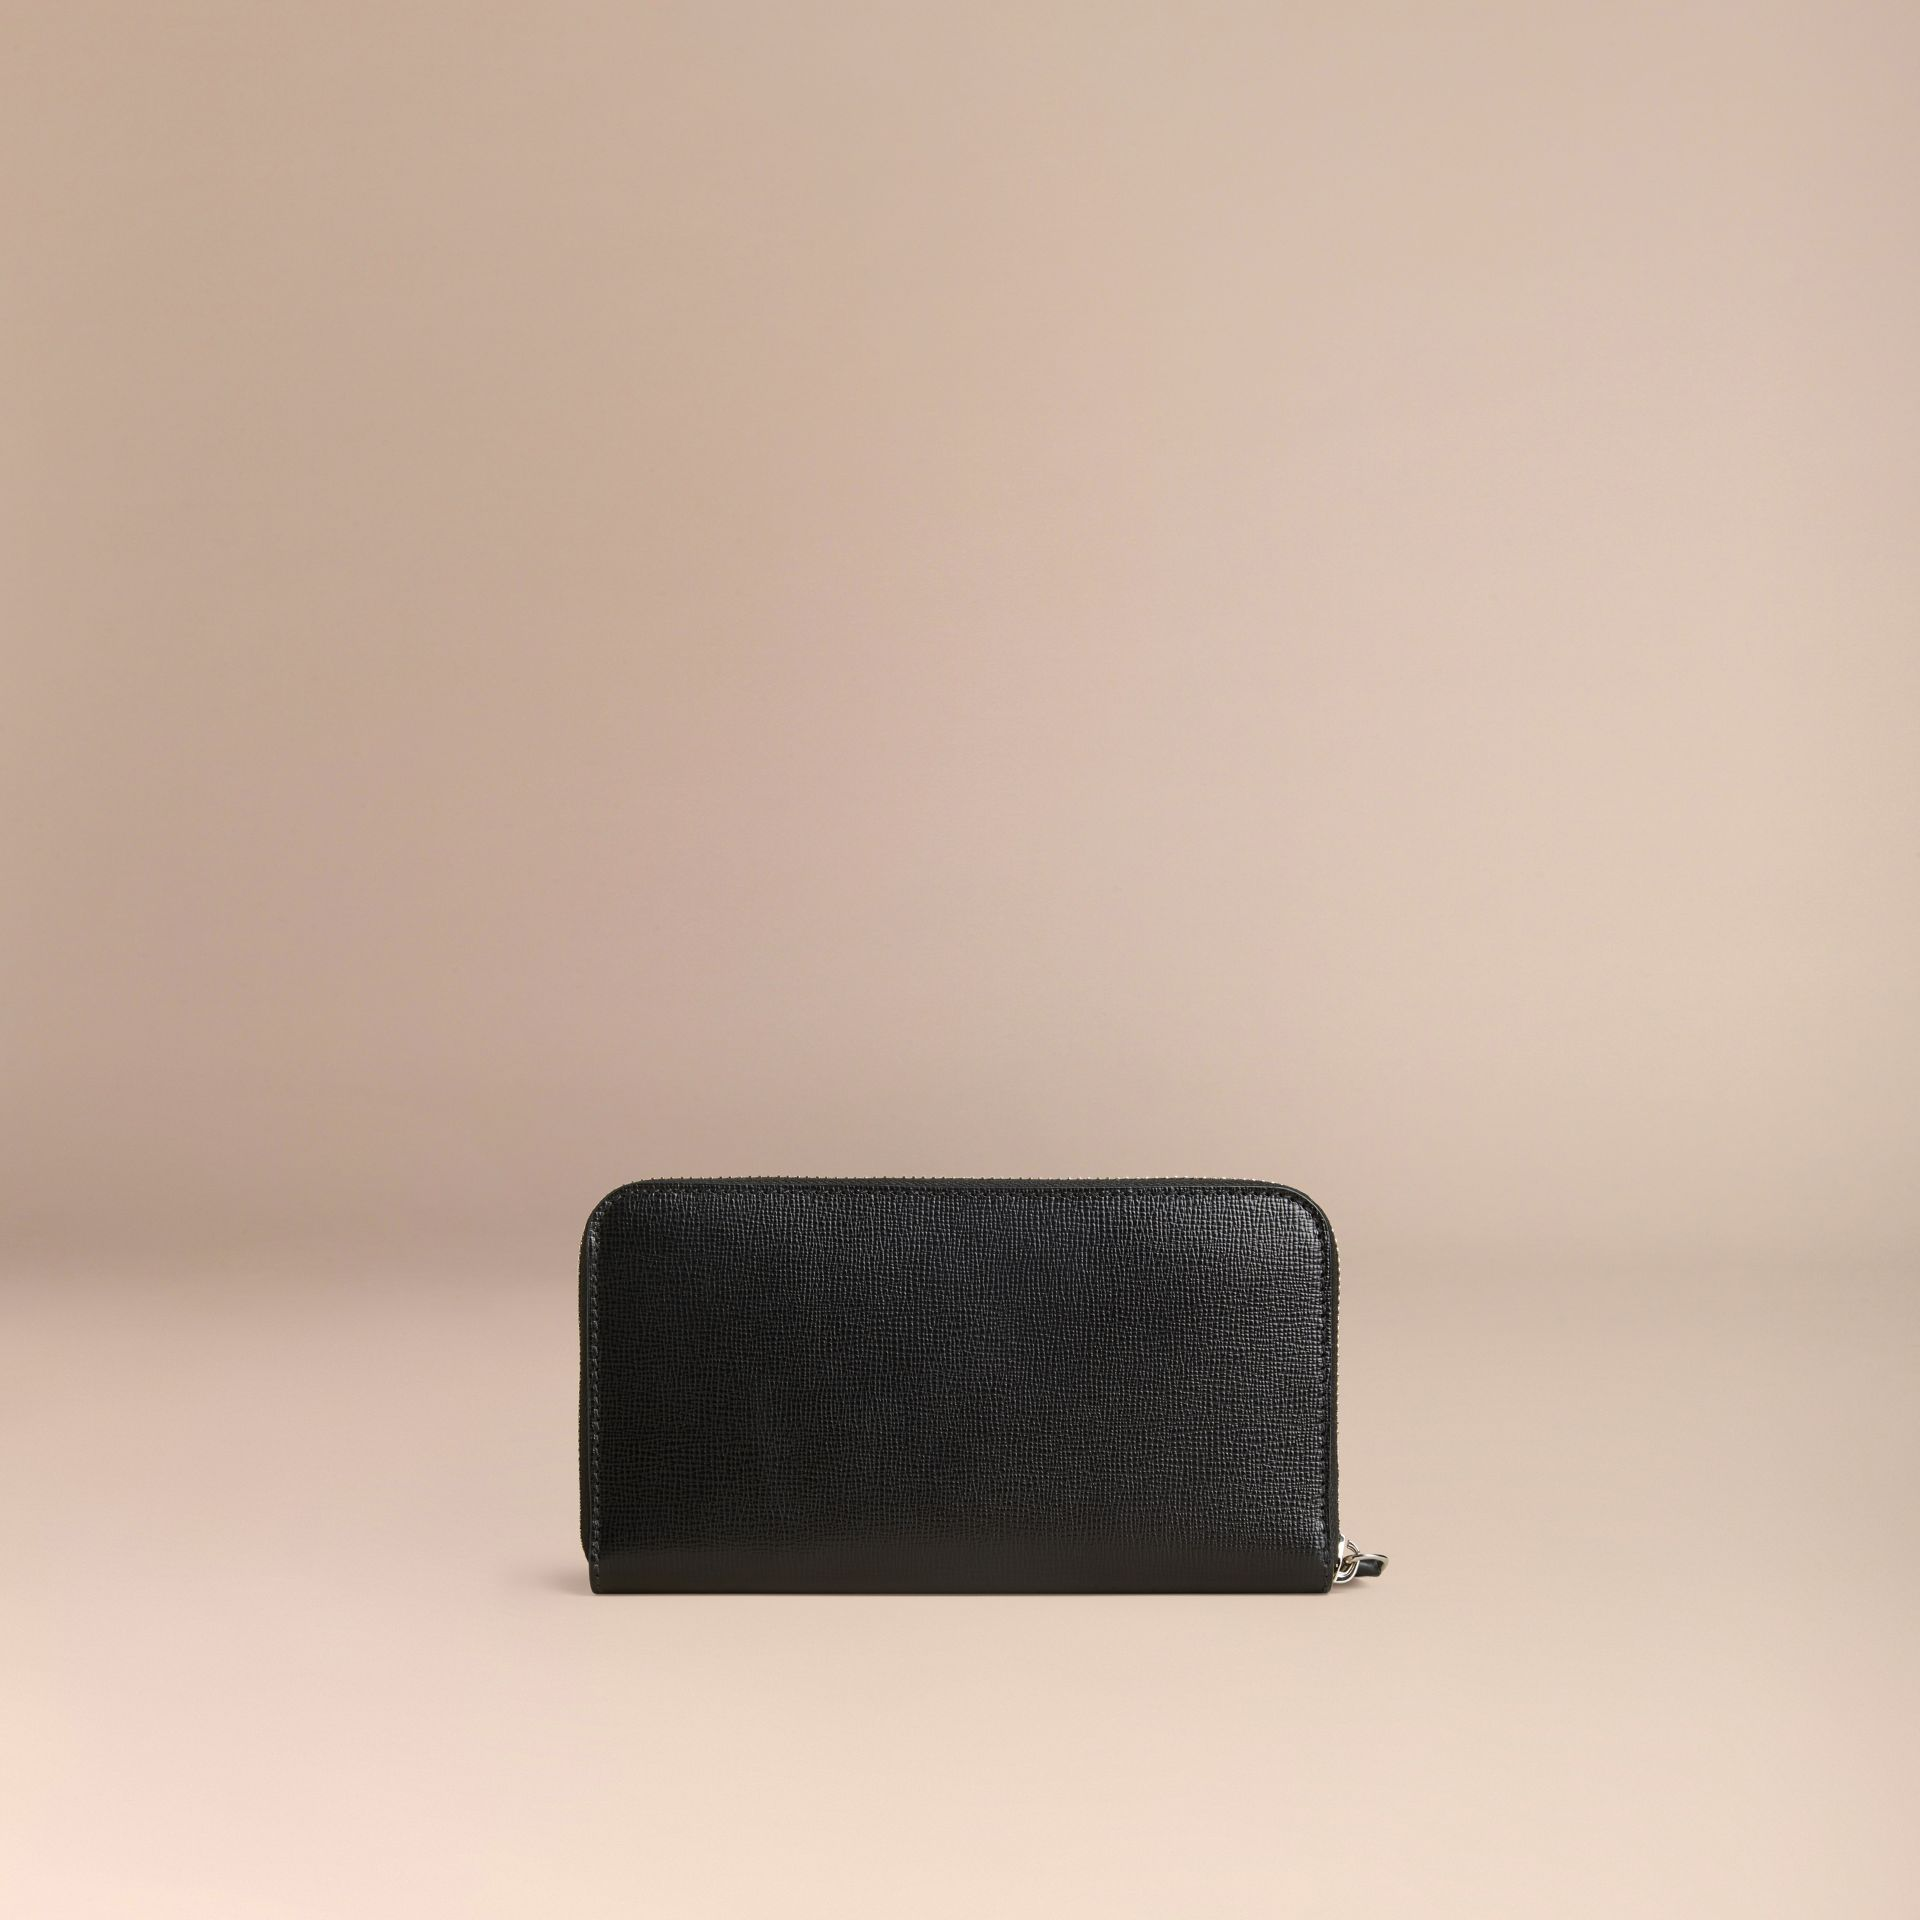 London Leather Ziparound Wallet in Black | Burberry Australia - gallery image 3